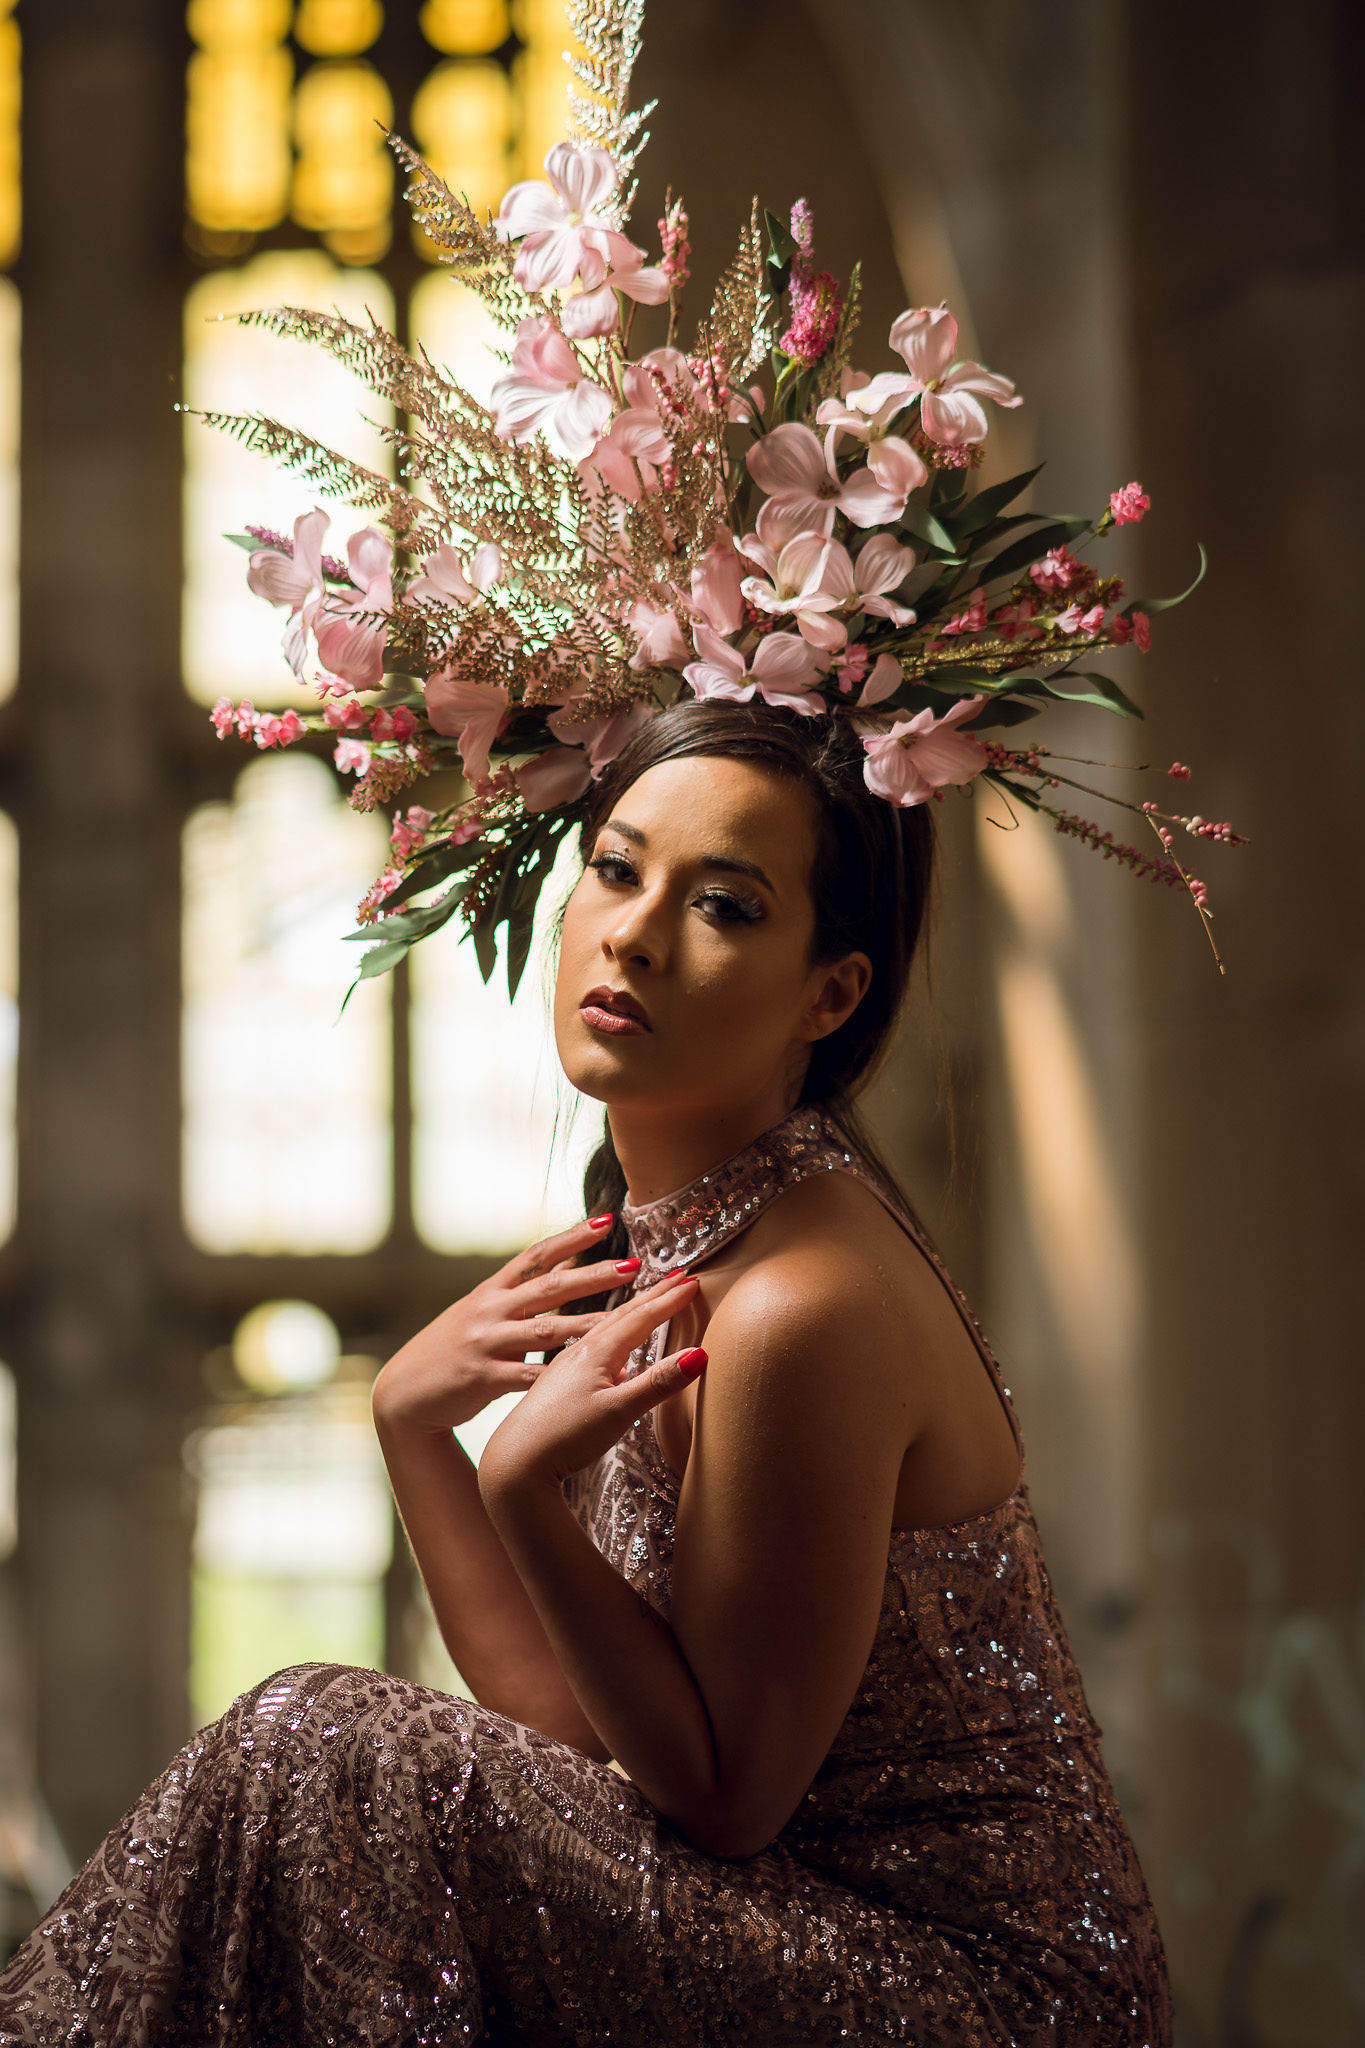 Chicago Model wearing headpiece in abandoned church